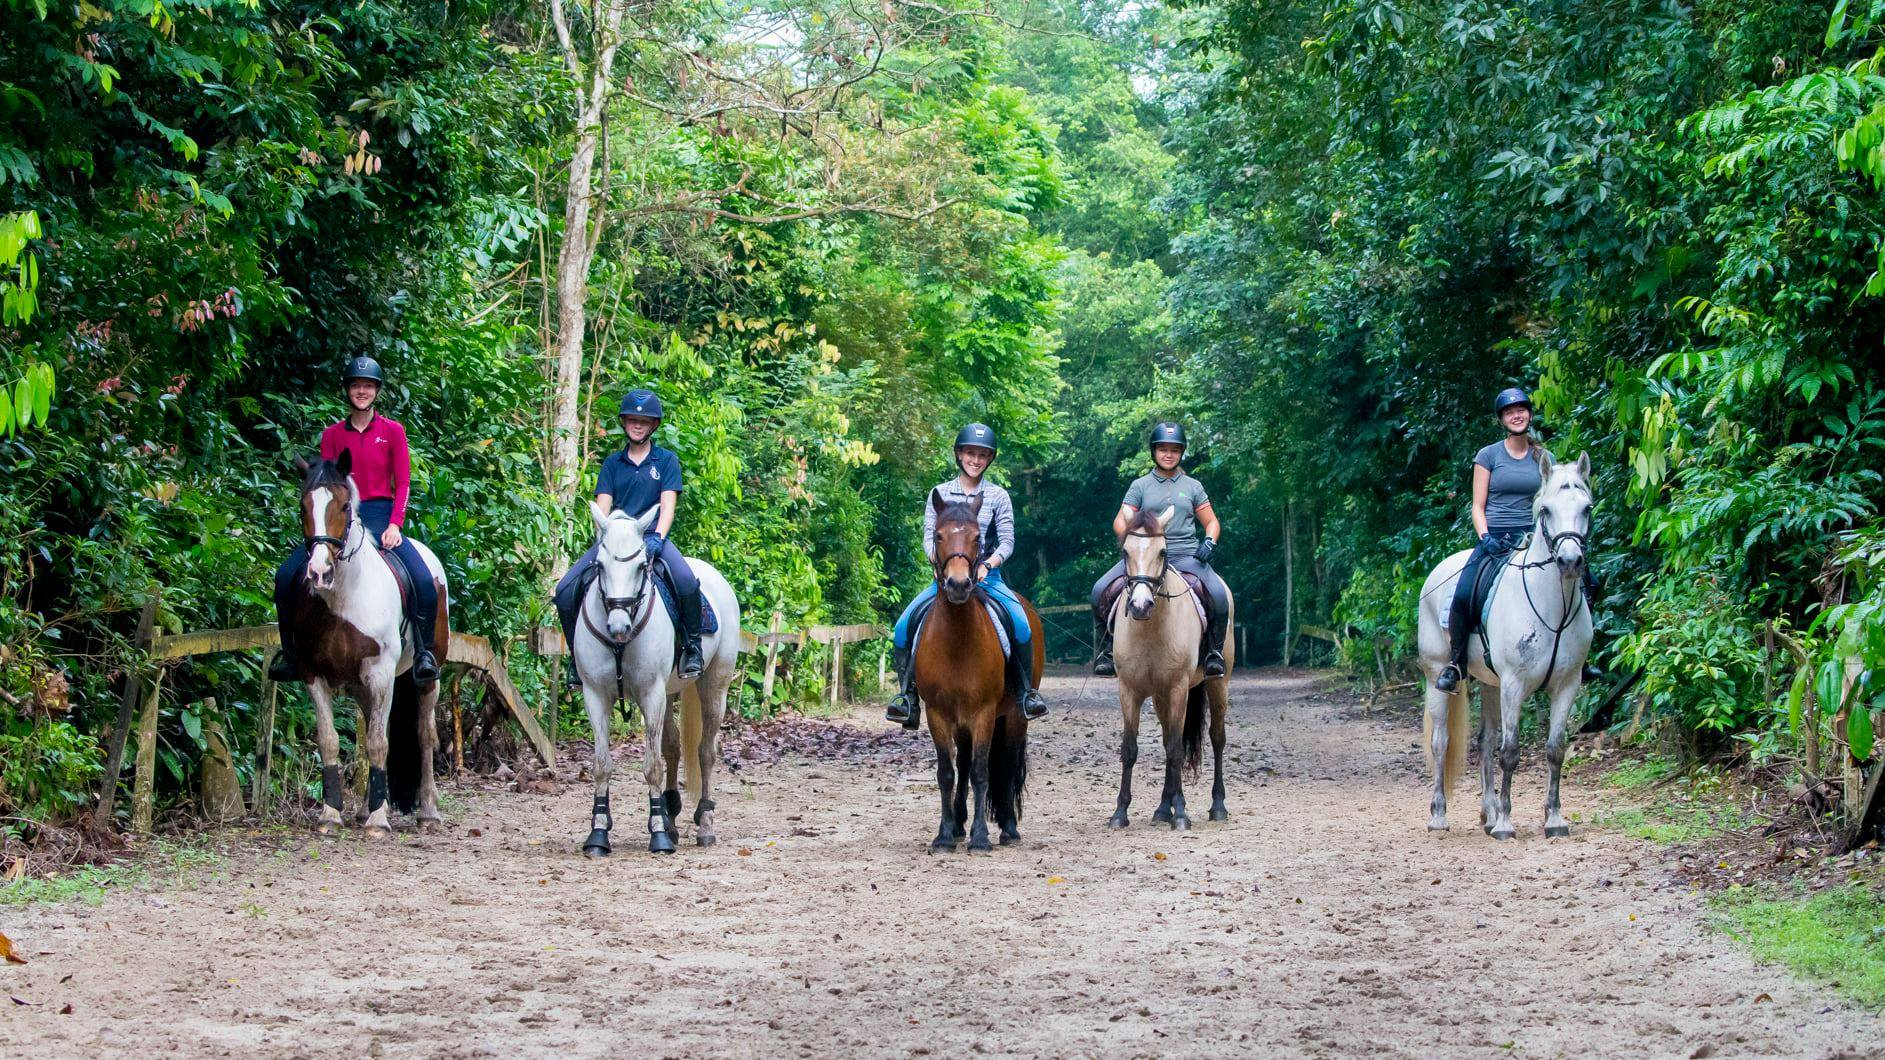 horses with riders in Bukit Timah